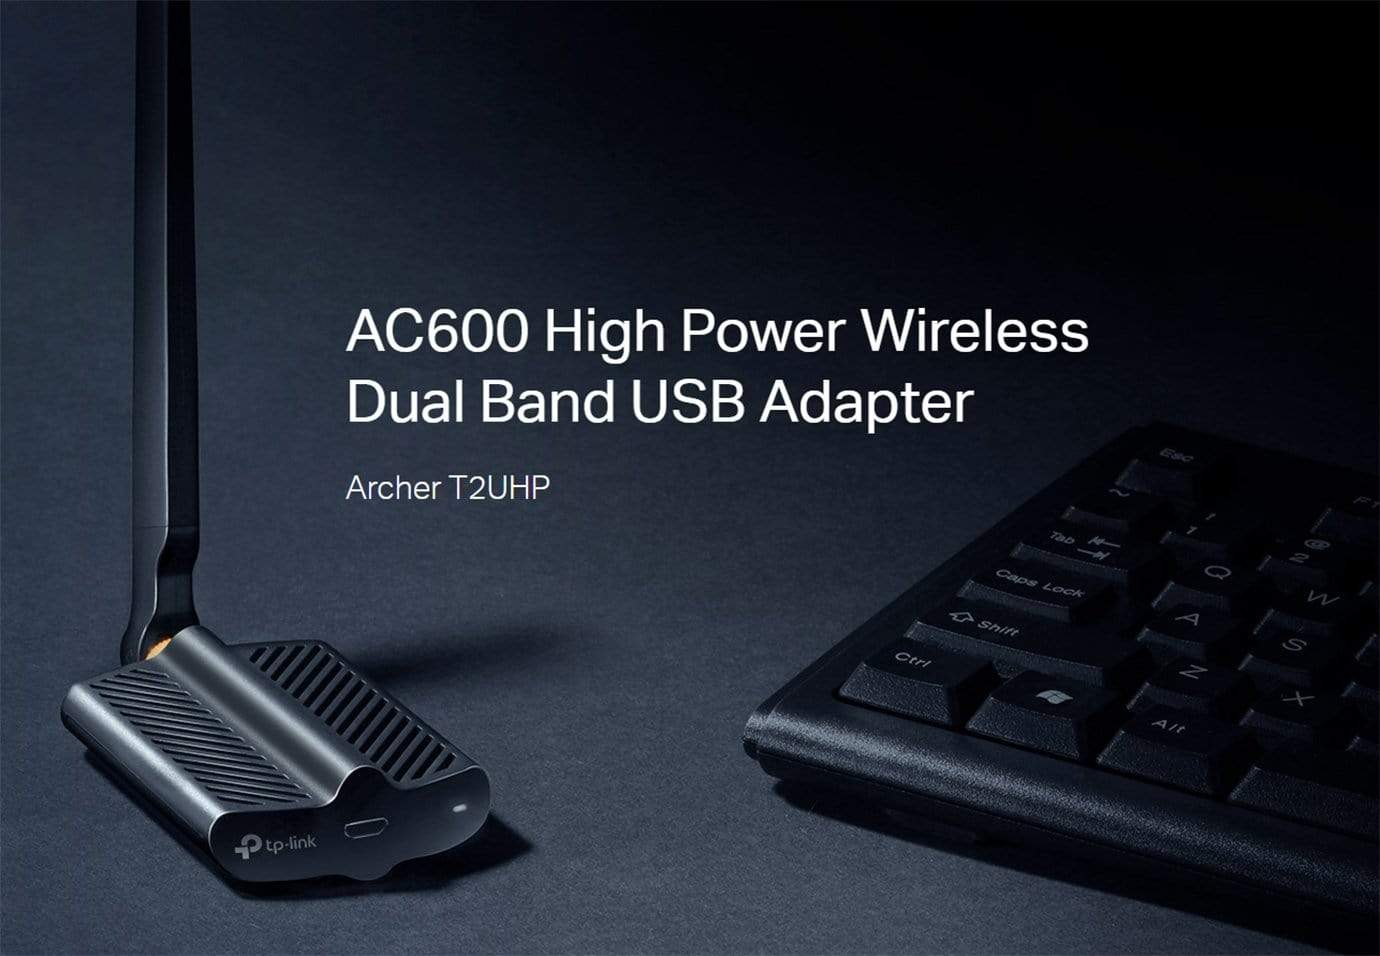 Archer T2UHP AC600 High Power Wireless Dual Band USB Adapter